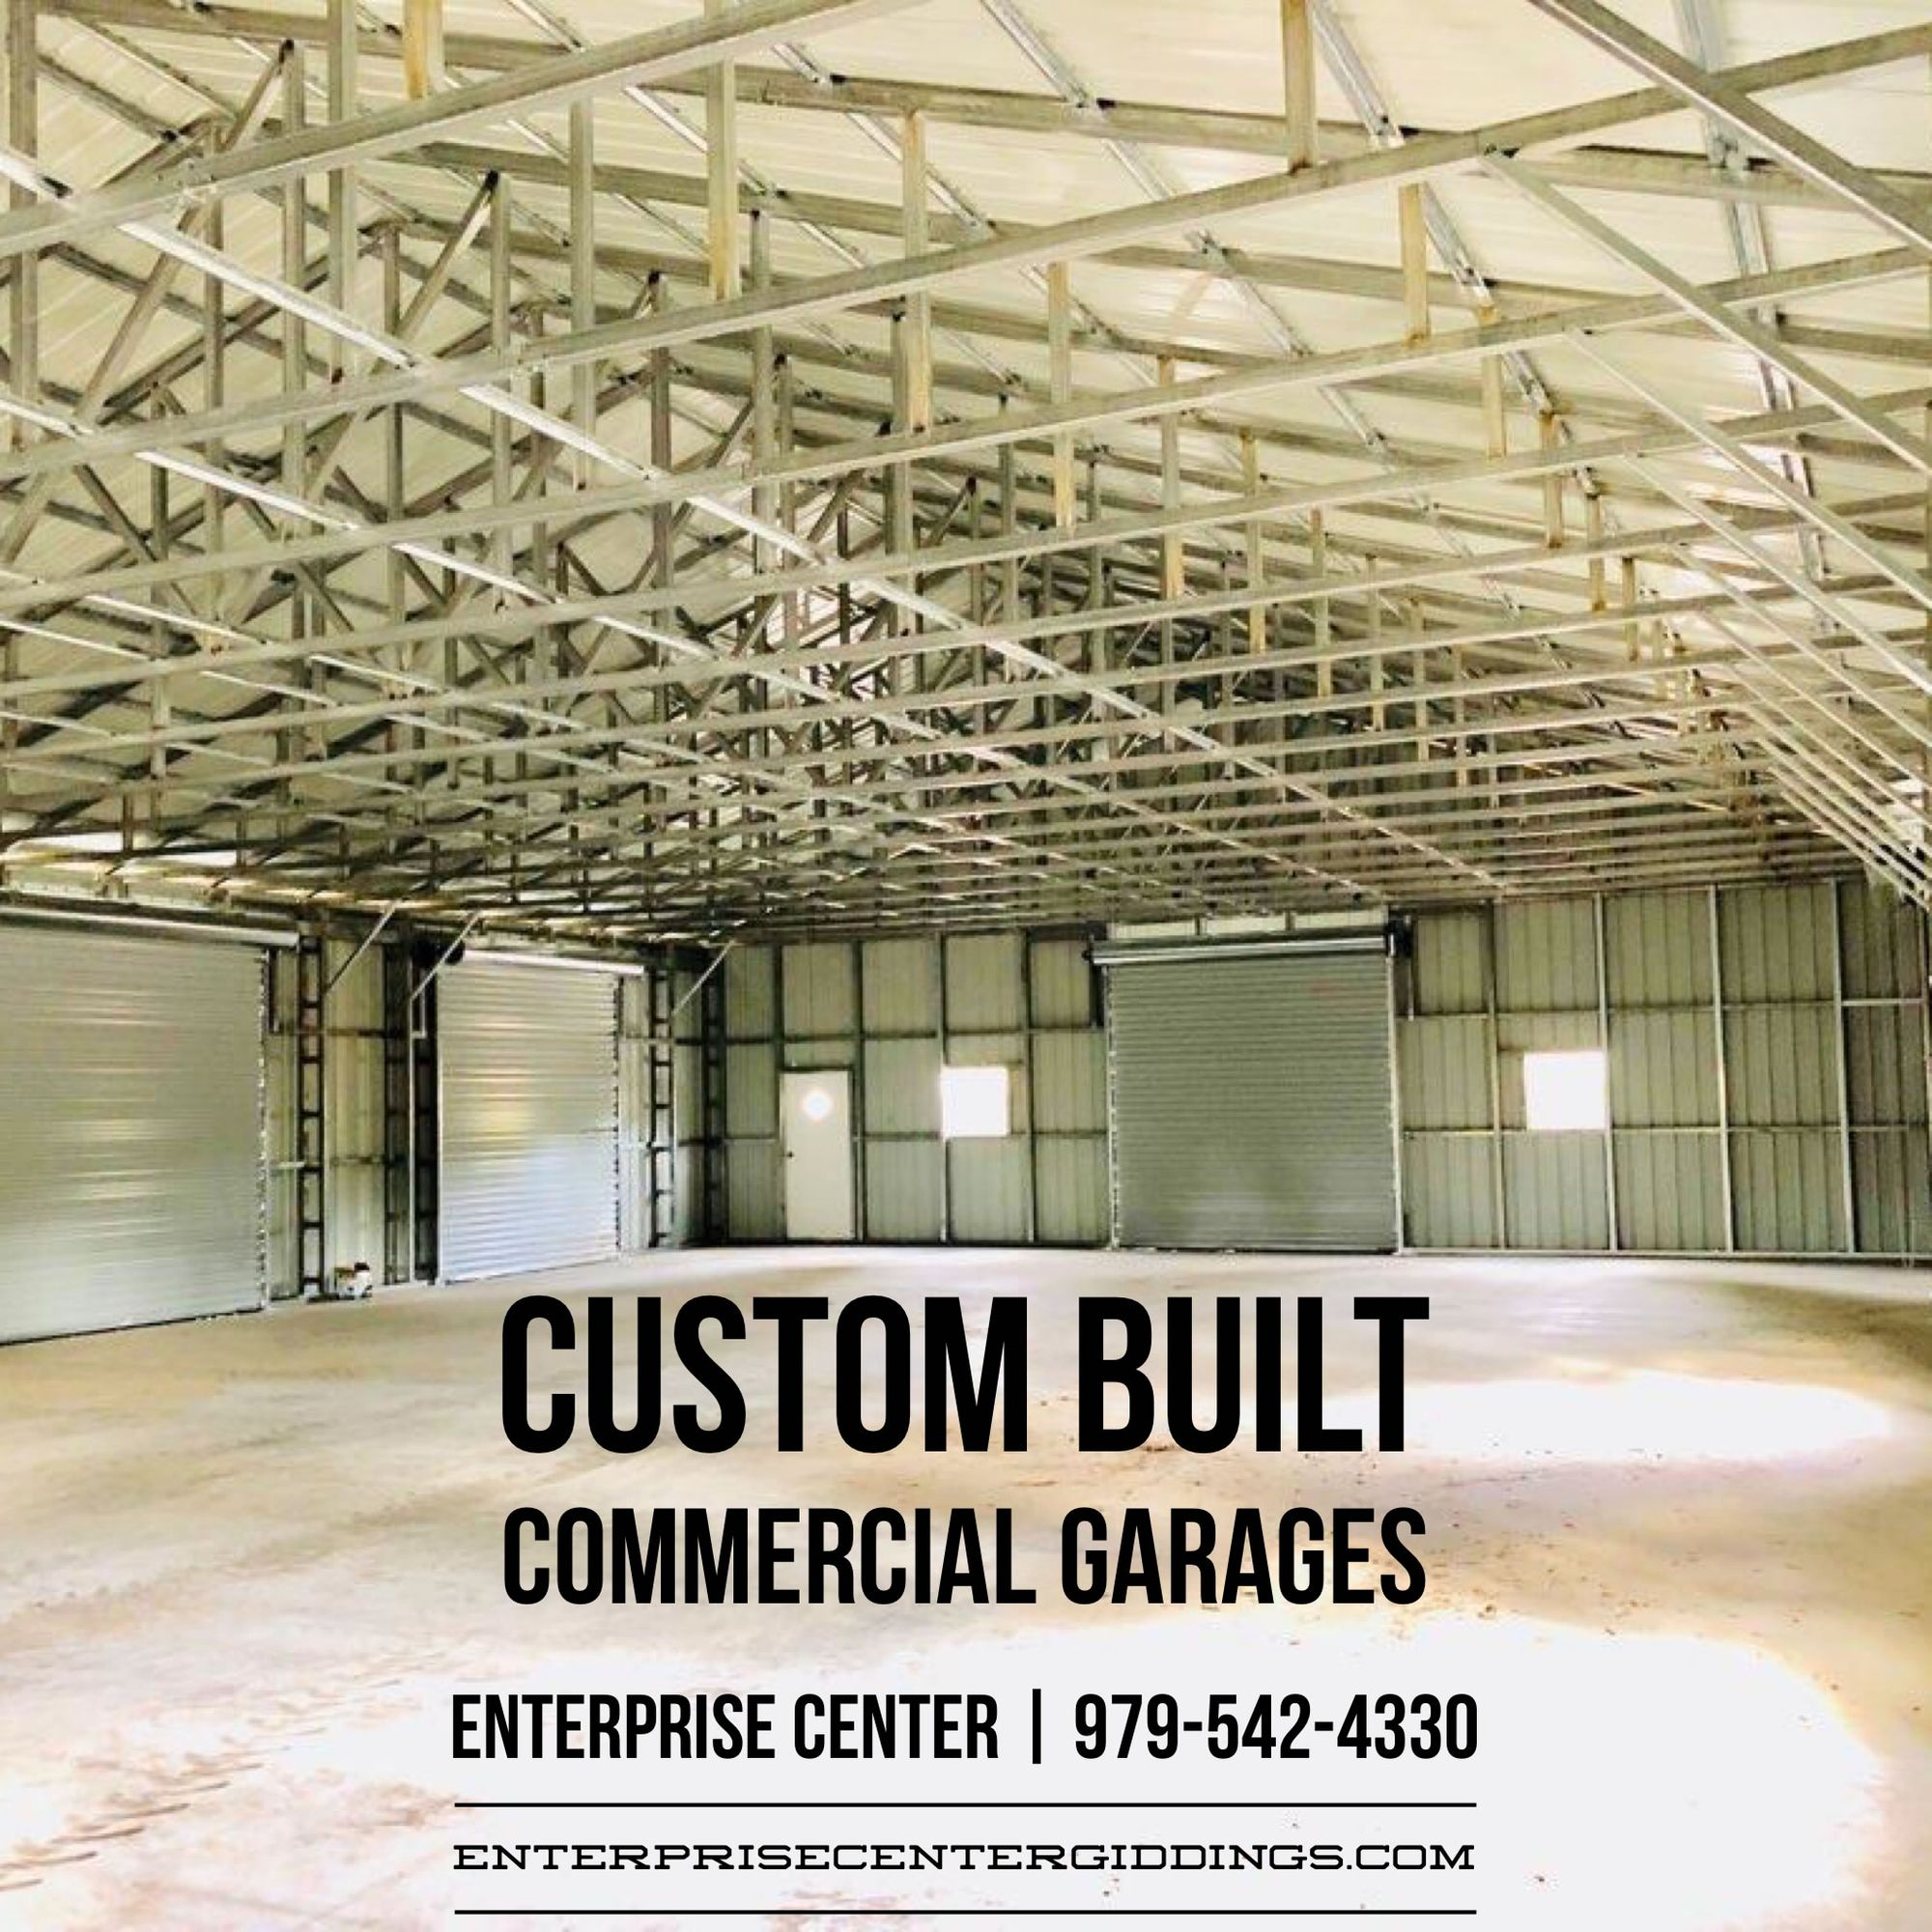 Call Enterprise SuperCenter for more information about